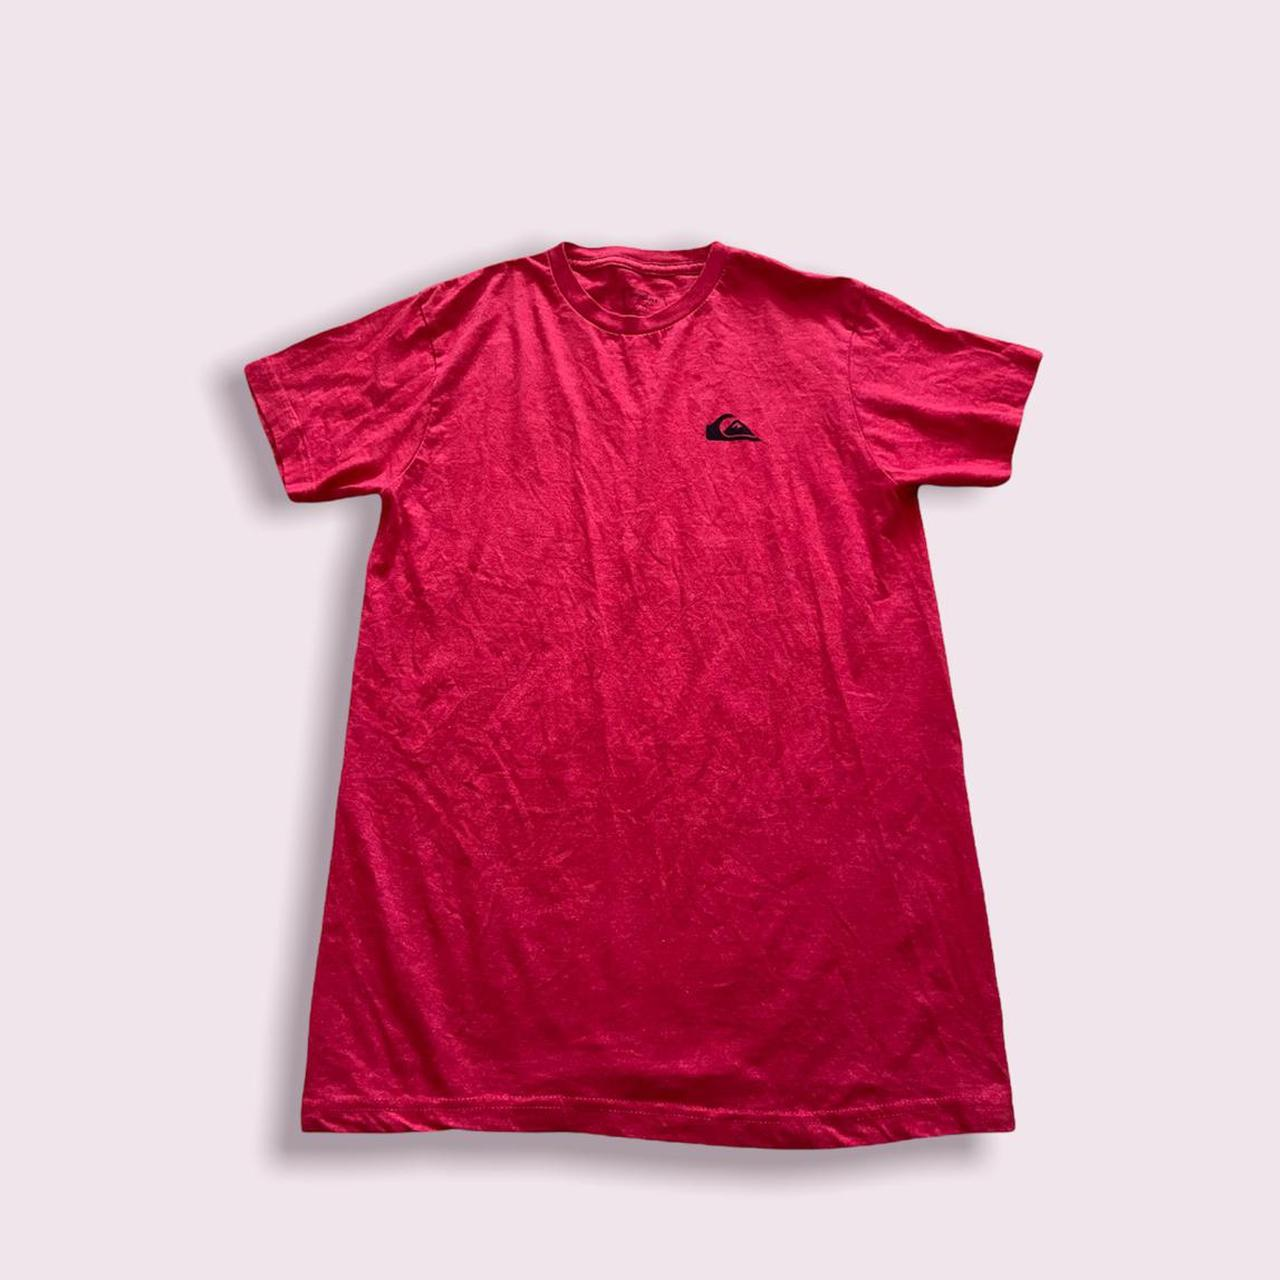 Product Image 1 - quiksilver red men's tee t-shirt